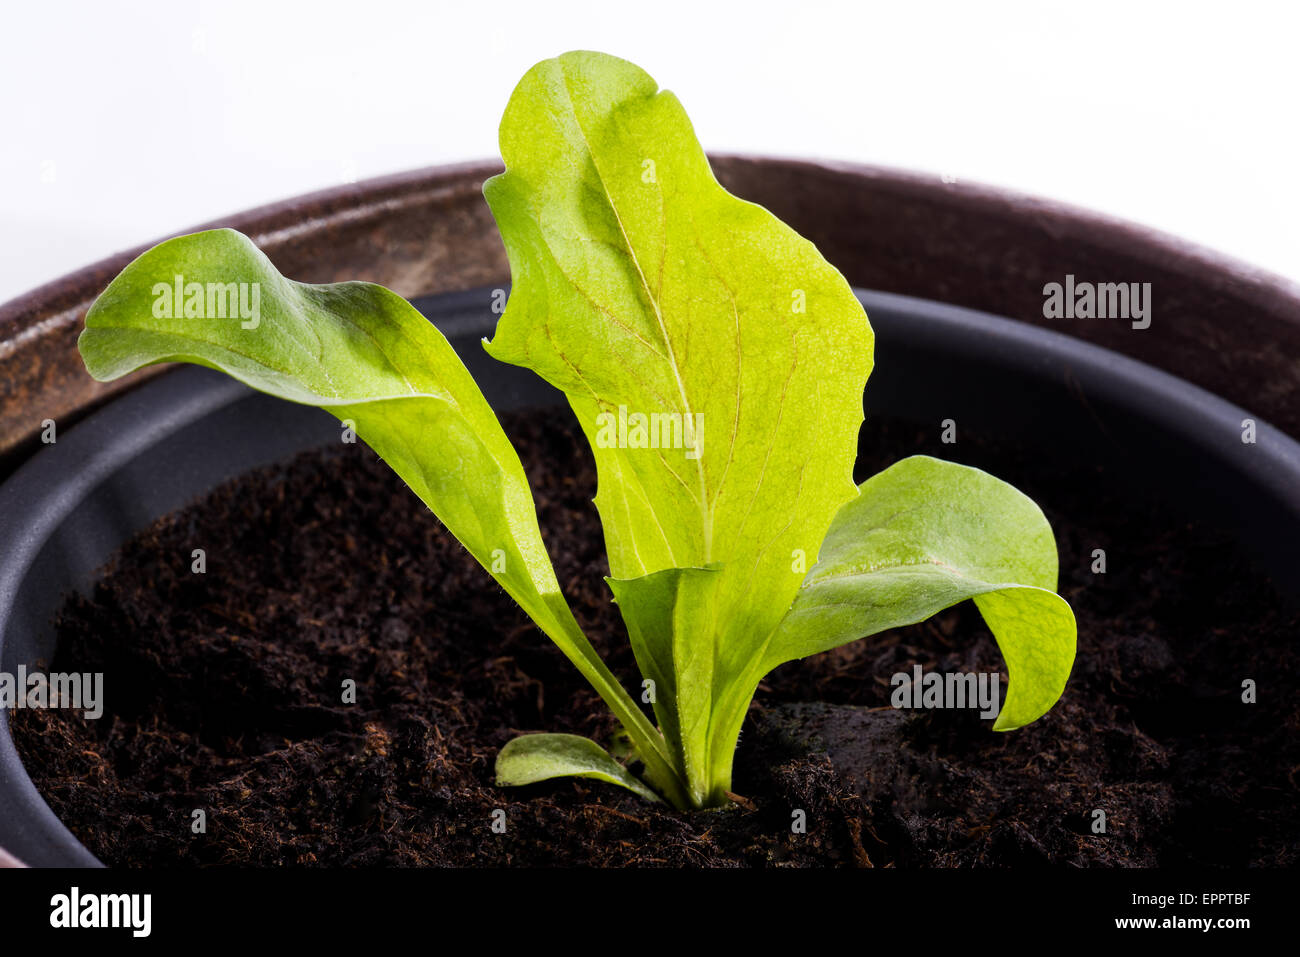 Lettuce plant in a pot, something small grow big, new green small weak growth begin begin cutout white background - Stock Image